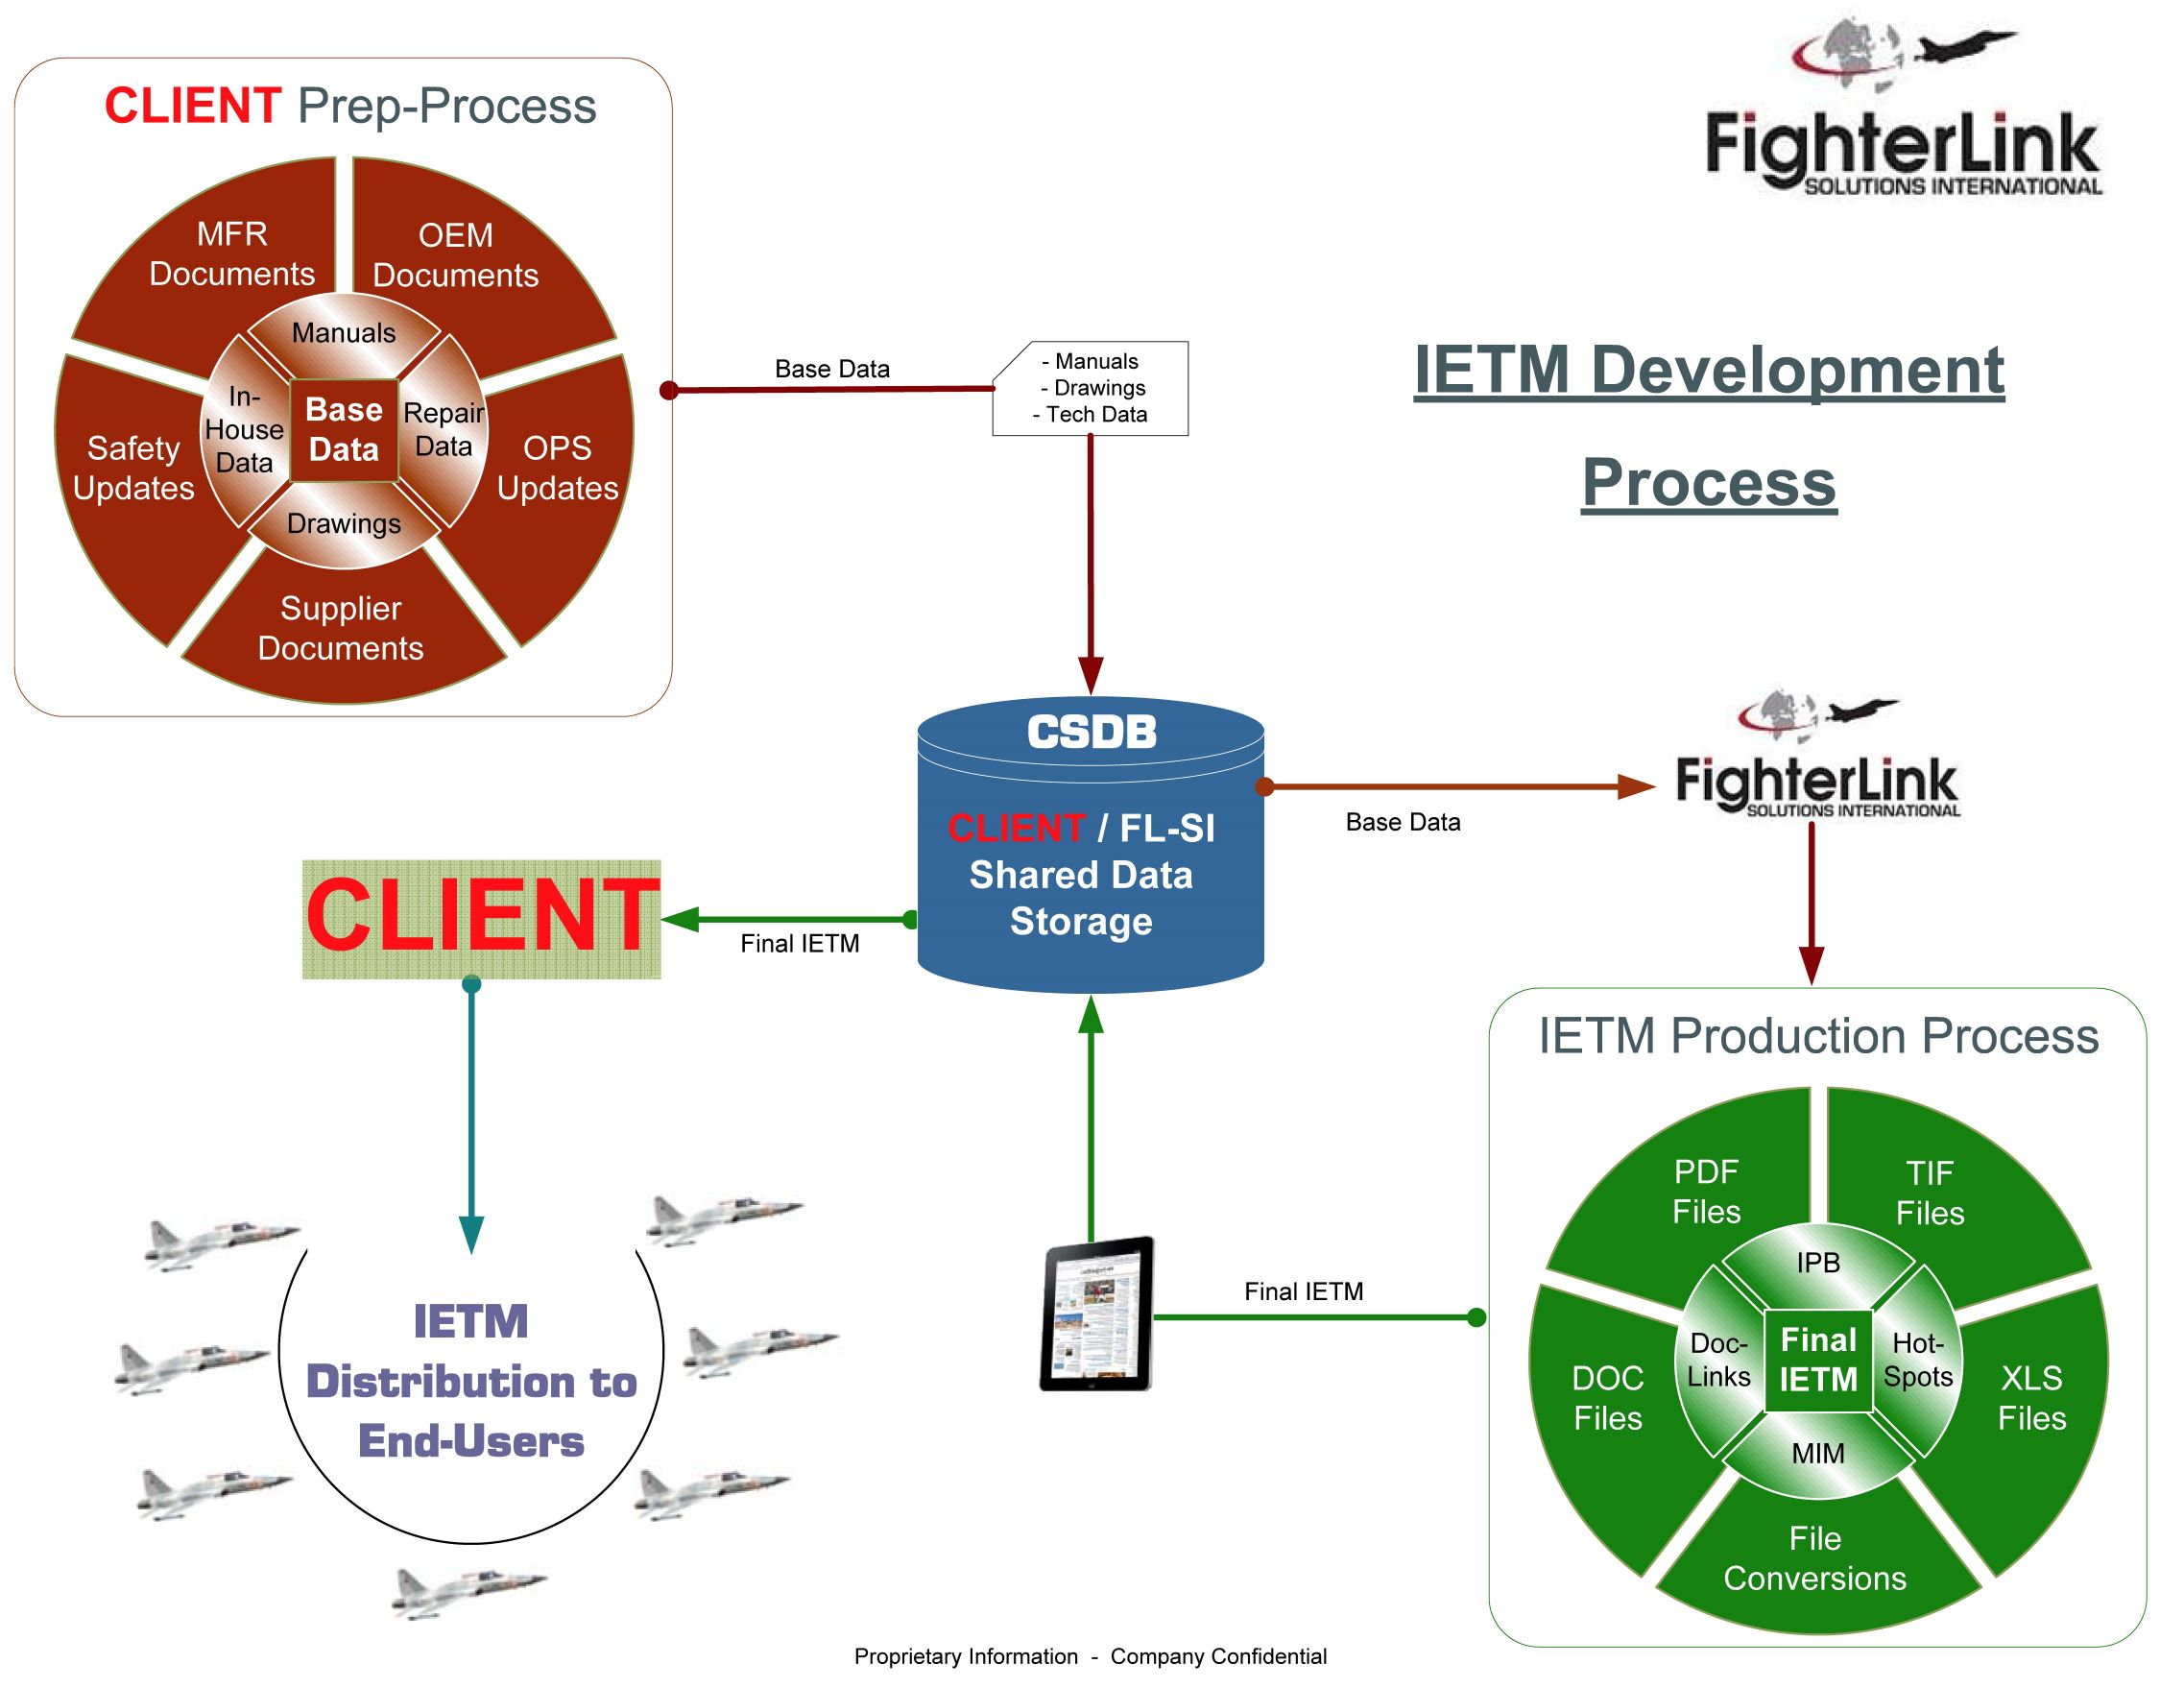 IETM Development Process 2jpg